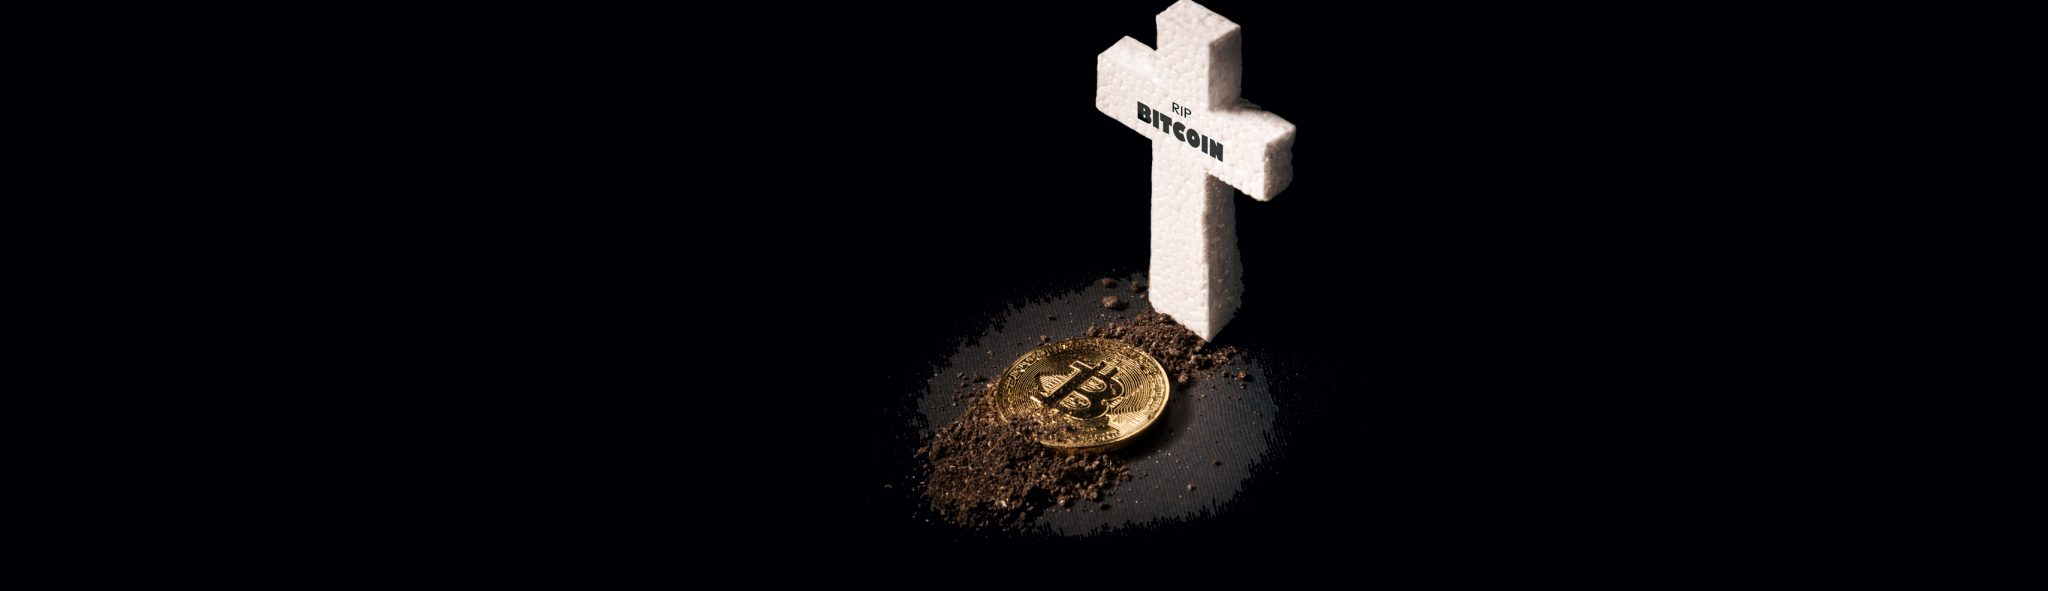 are cryptocurrencys dead